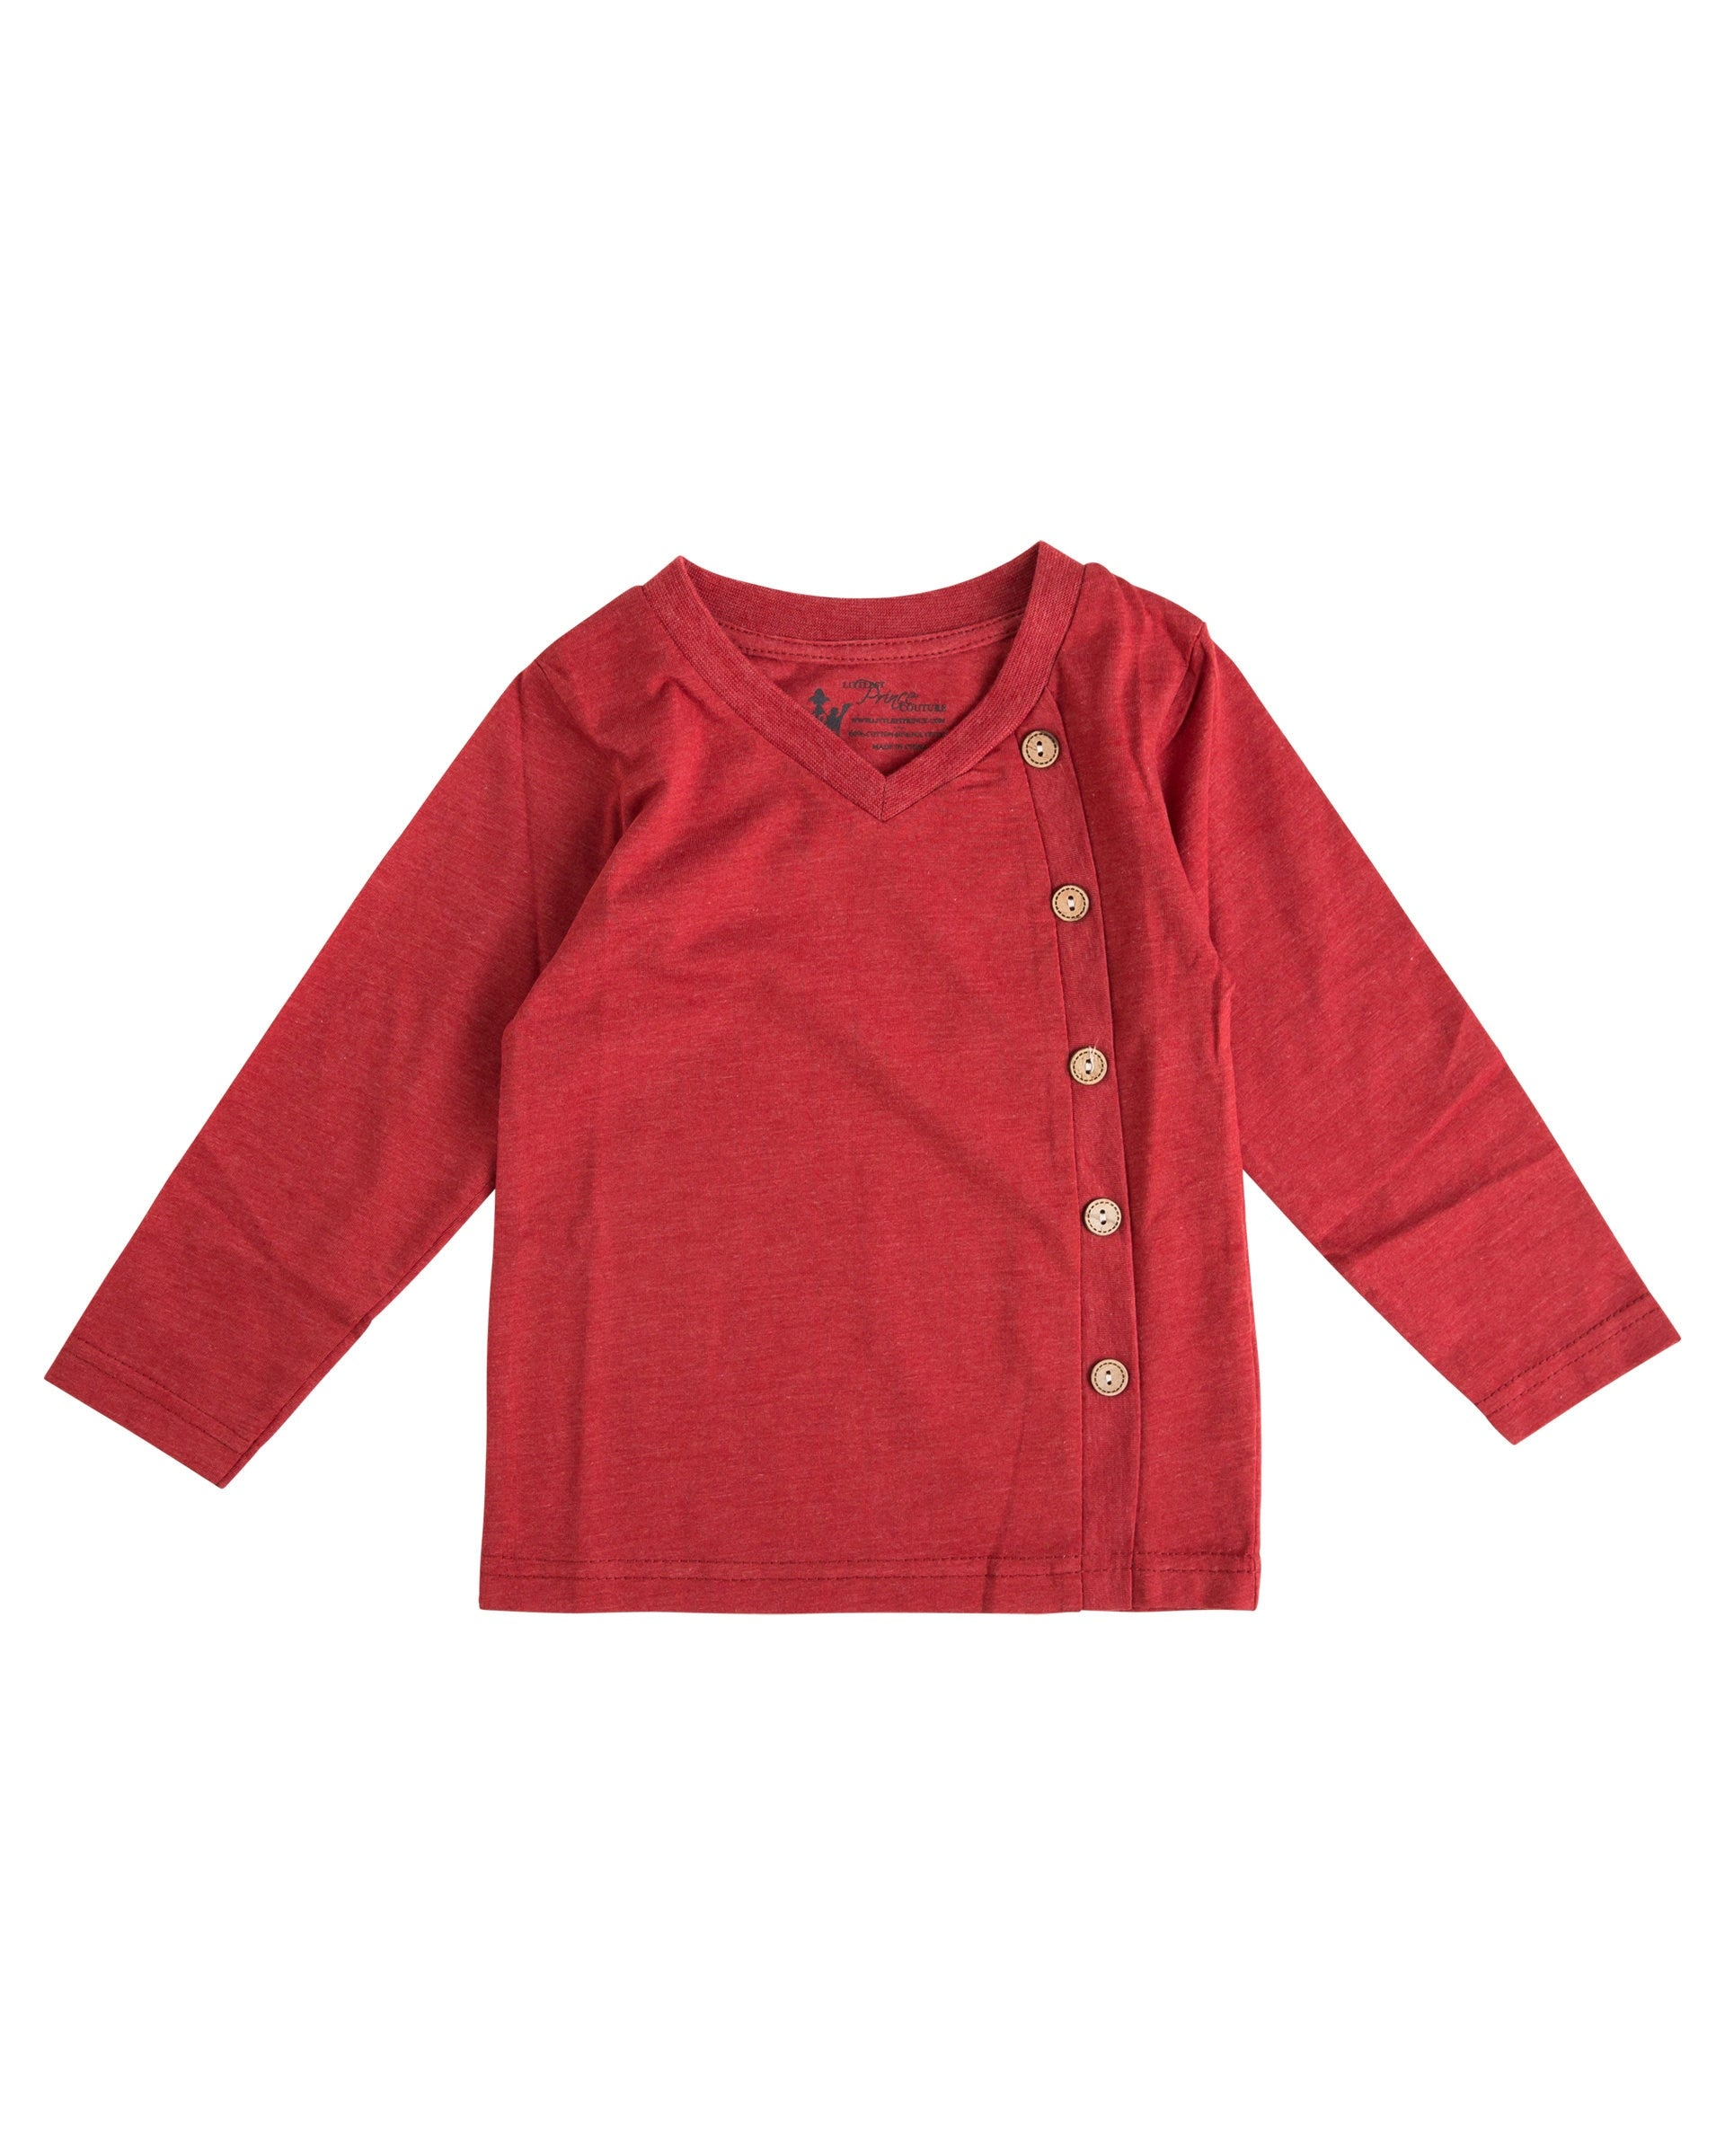 sbvns-rd-red-side-button-shirt-front.jpg